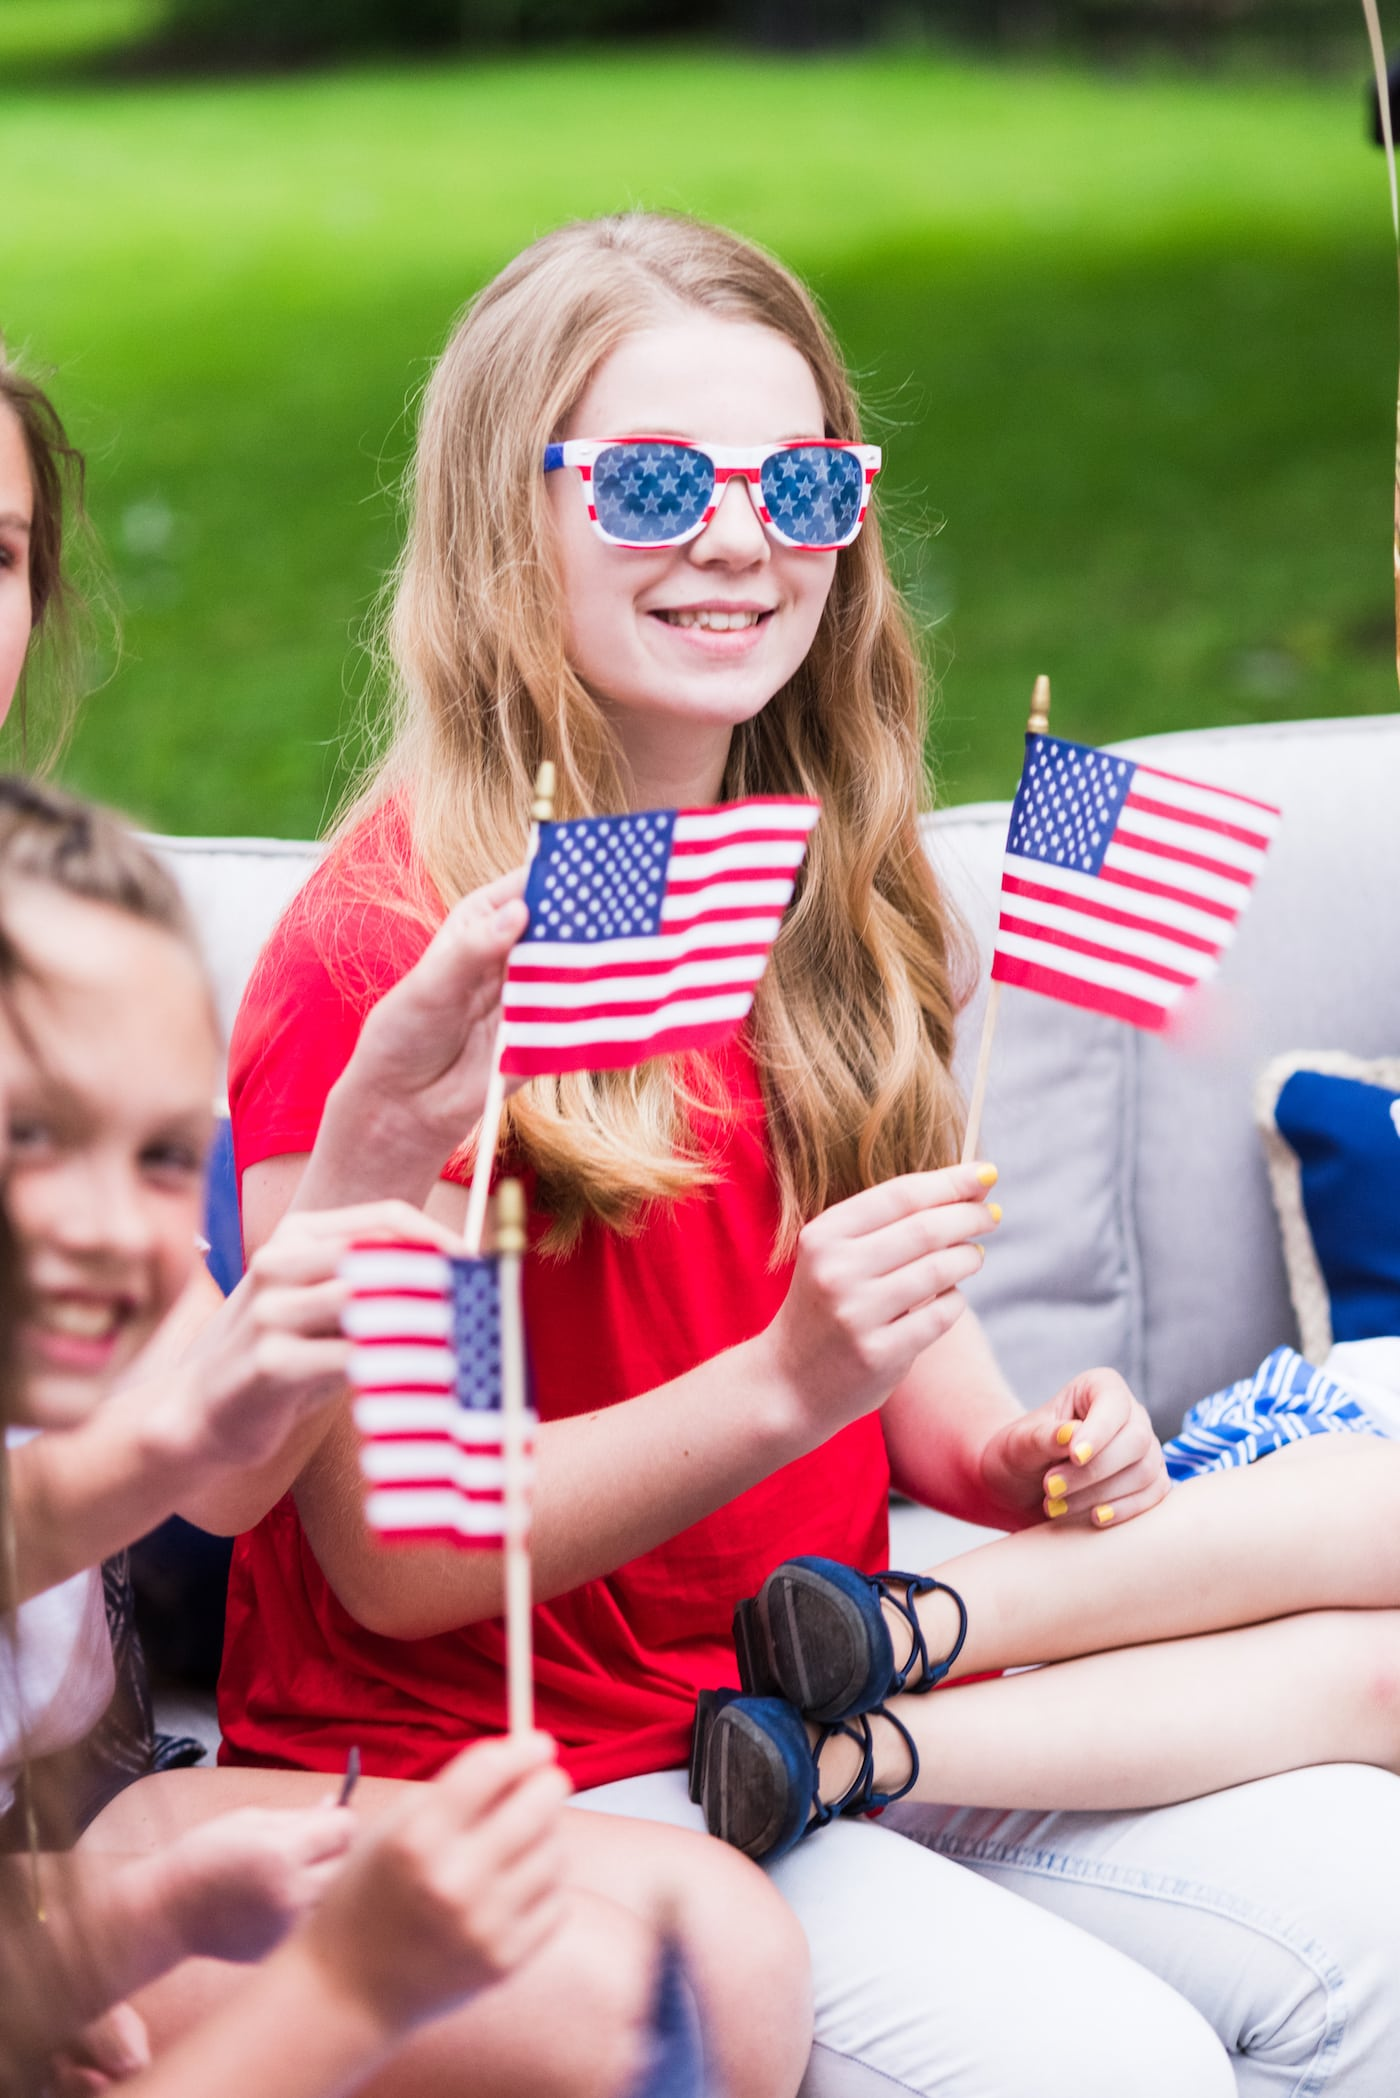 Host an Americana Inspired 4th of July Party | Get ideas for 4th of July desserts, entertaining tips, 4th of July decorations, 4th of July party ideas and more from @cydconverse